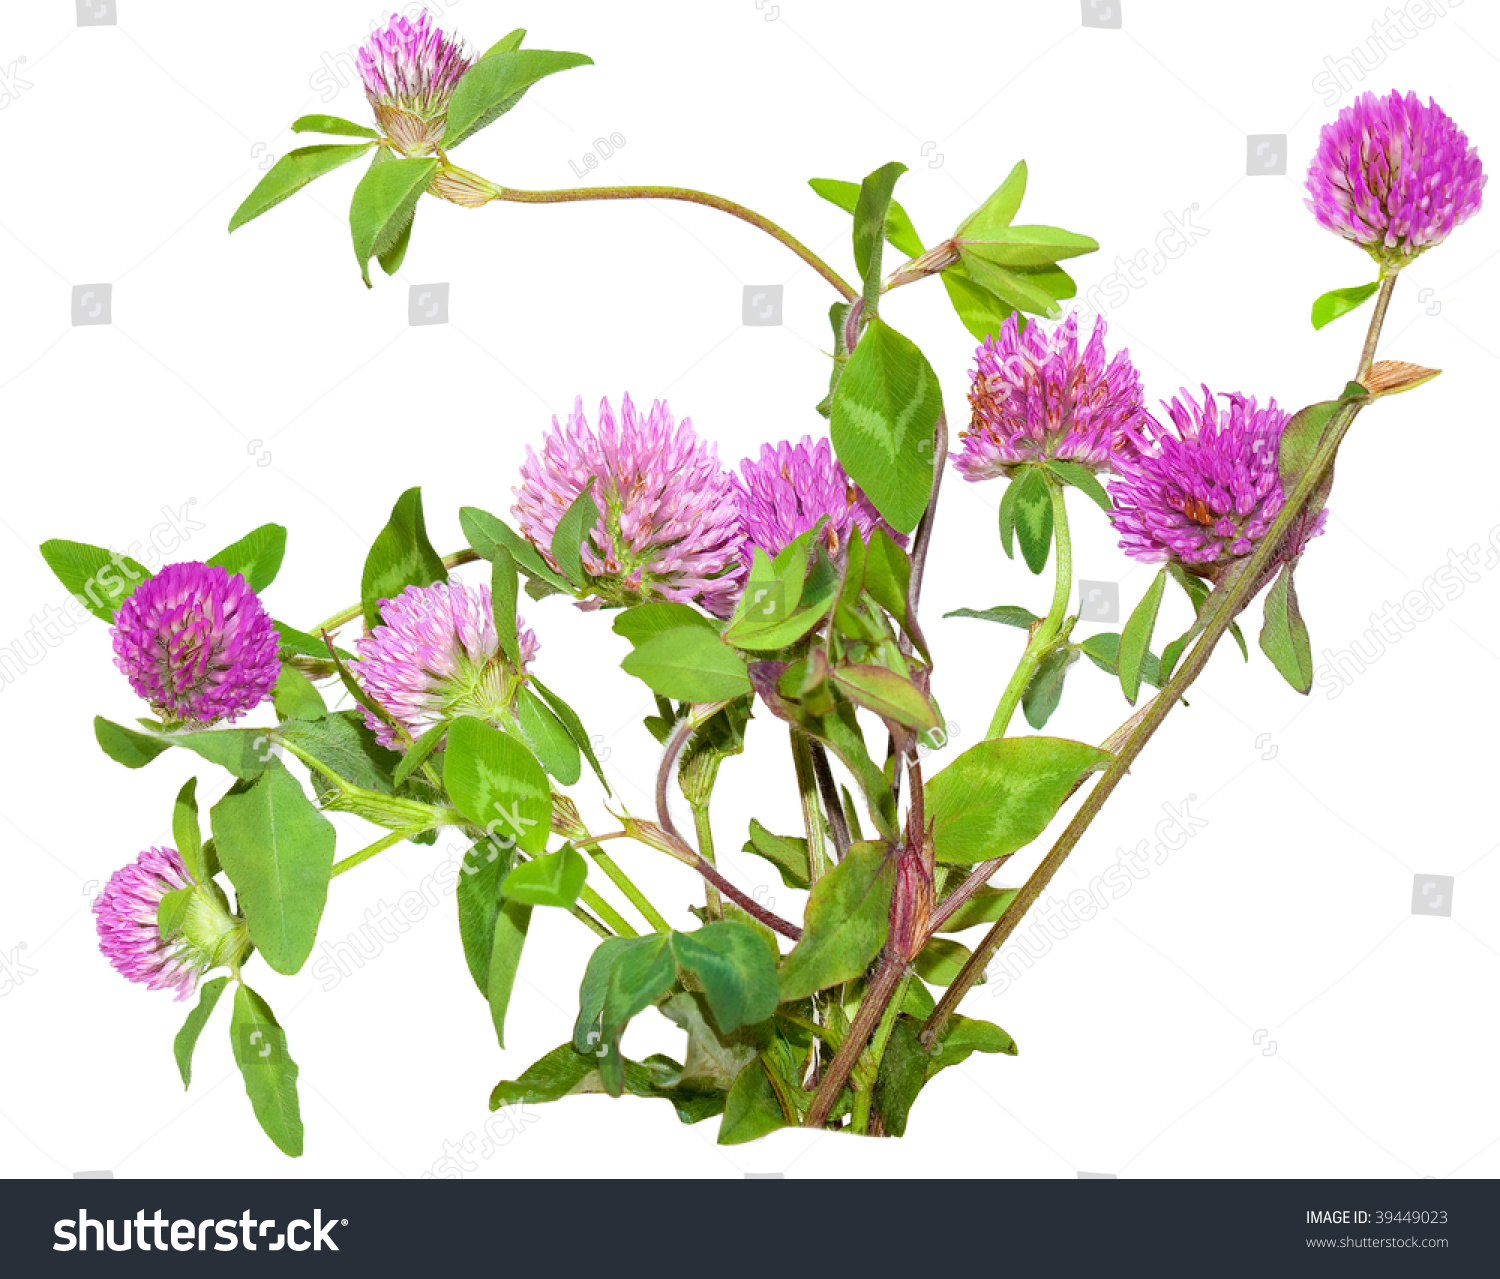 Bundle Pink Clover Flowers Trifolium Pratense Stock Photo Edit Now